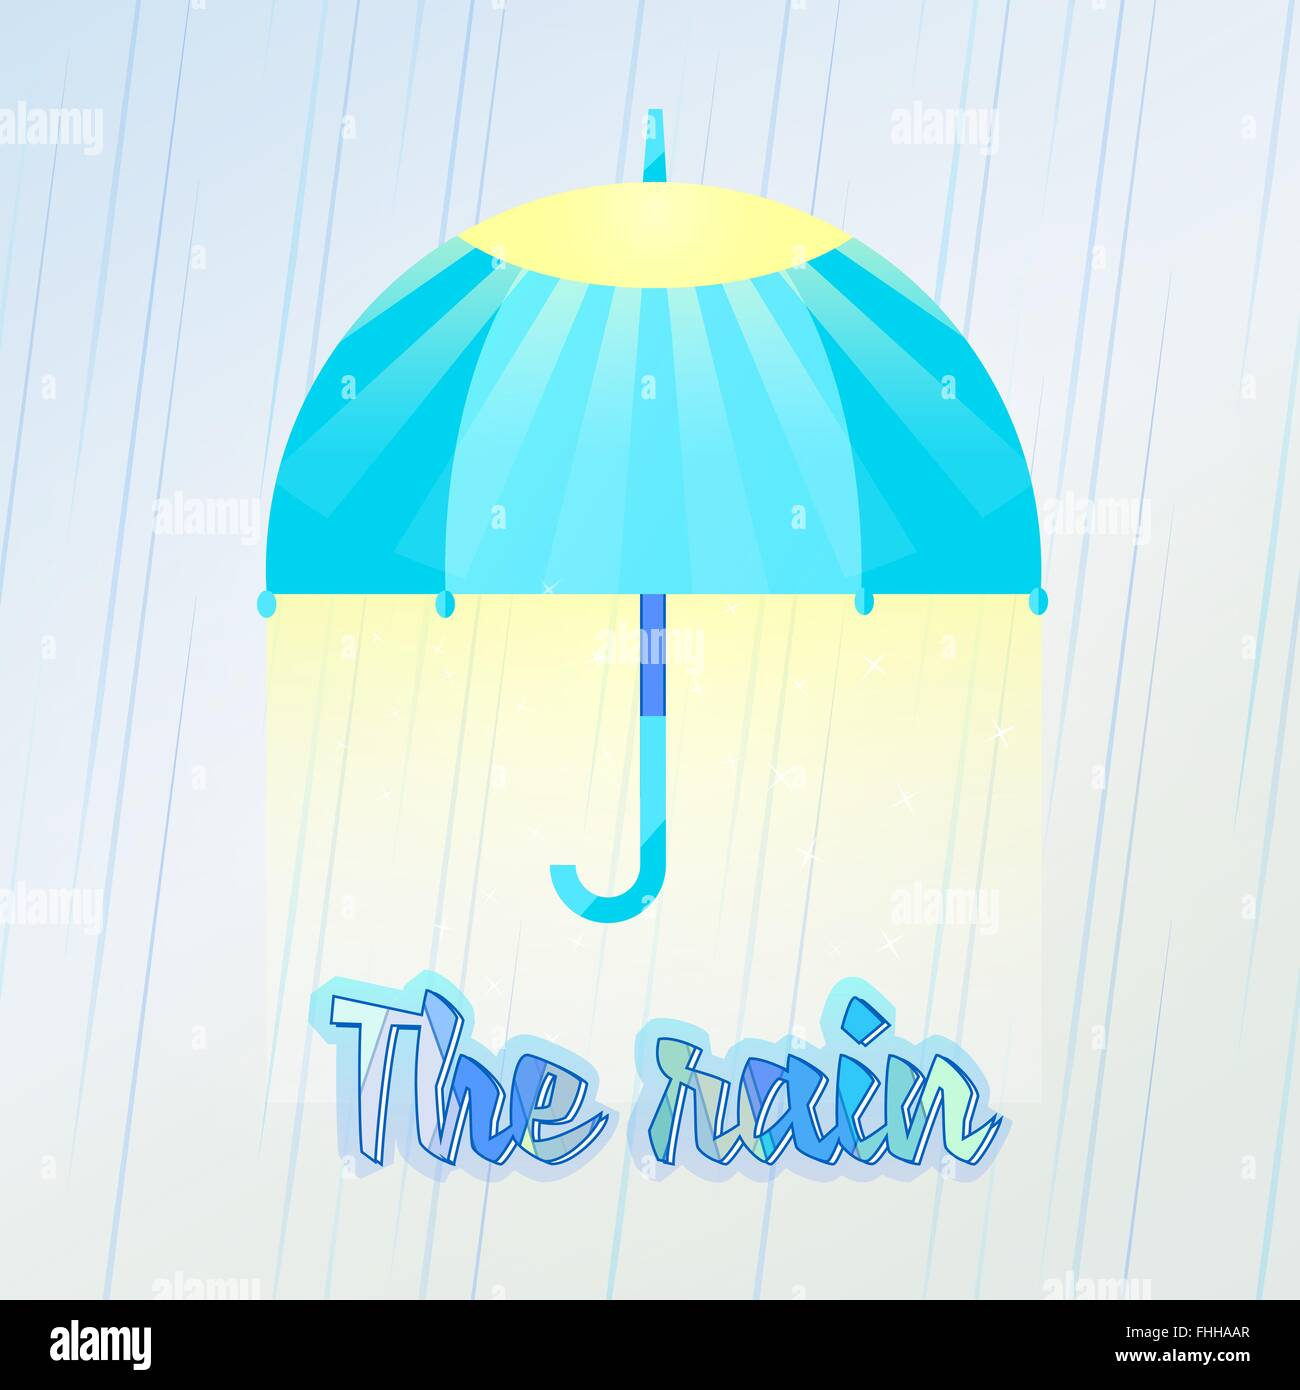 To walk under the great umbrella, love rain. Vector illustration of umbrella in the rain. The umbrella with the - Stock Image